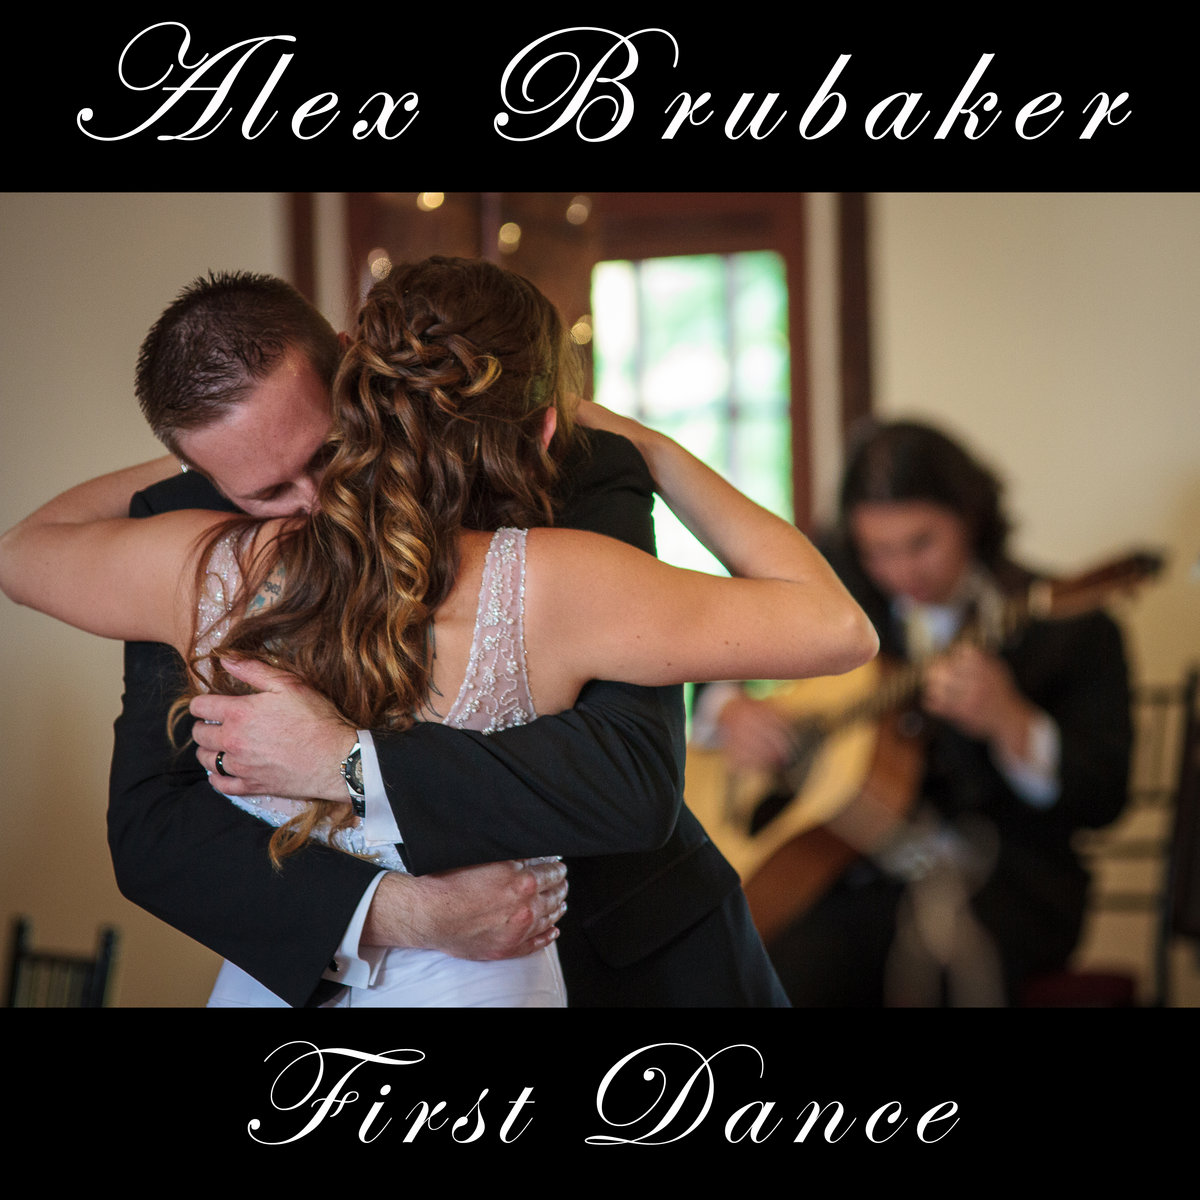 First Dance by Alex Brubaker